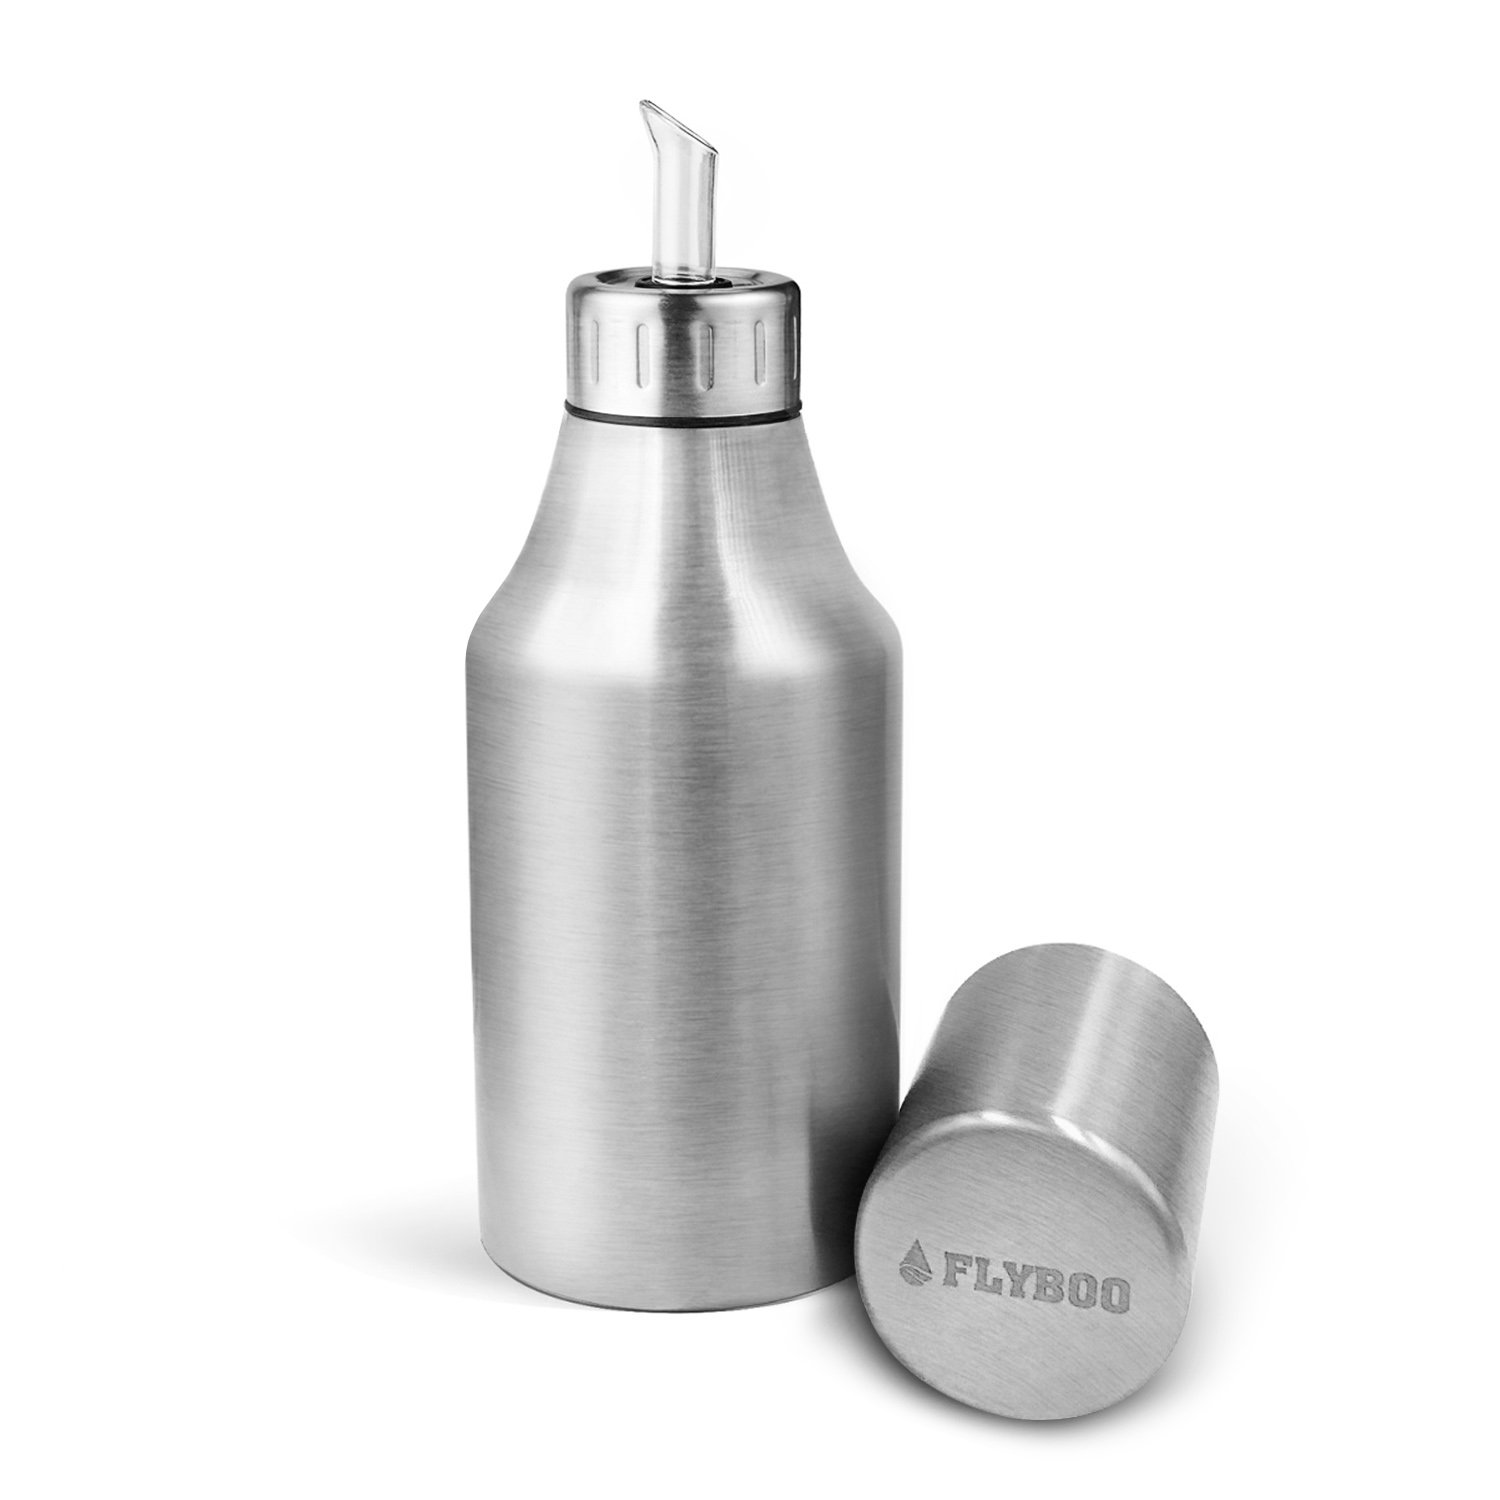 FLYBOO Olive Oil Dispenser Oil Bottle Unbreakable Stainless Steel by 35oz (1000ML) by Flyboo